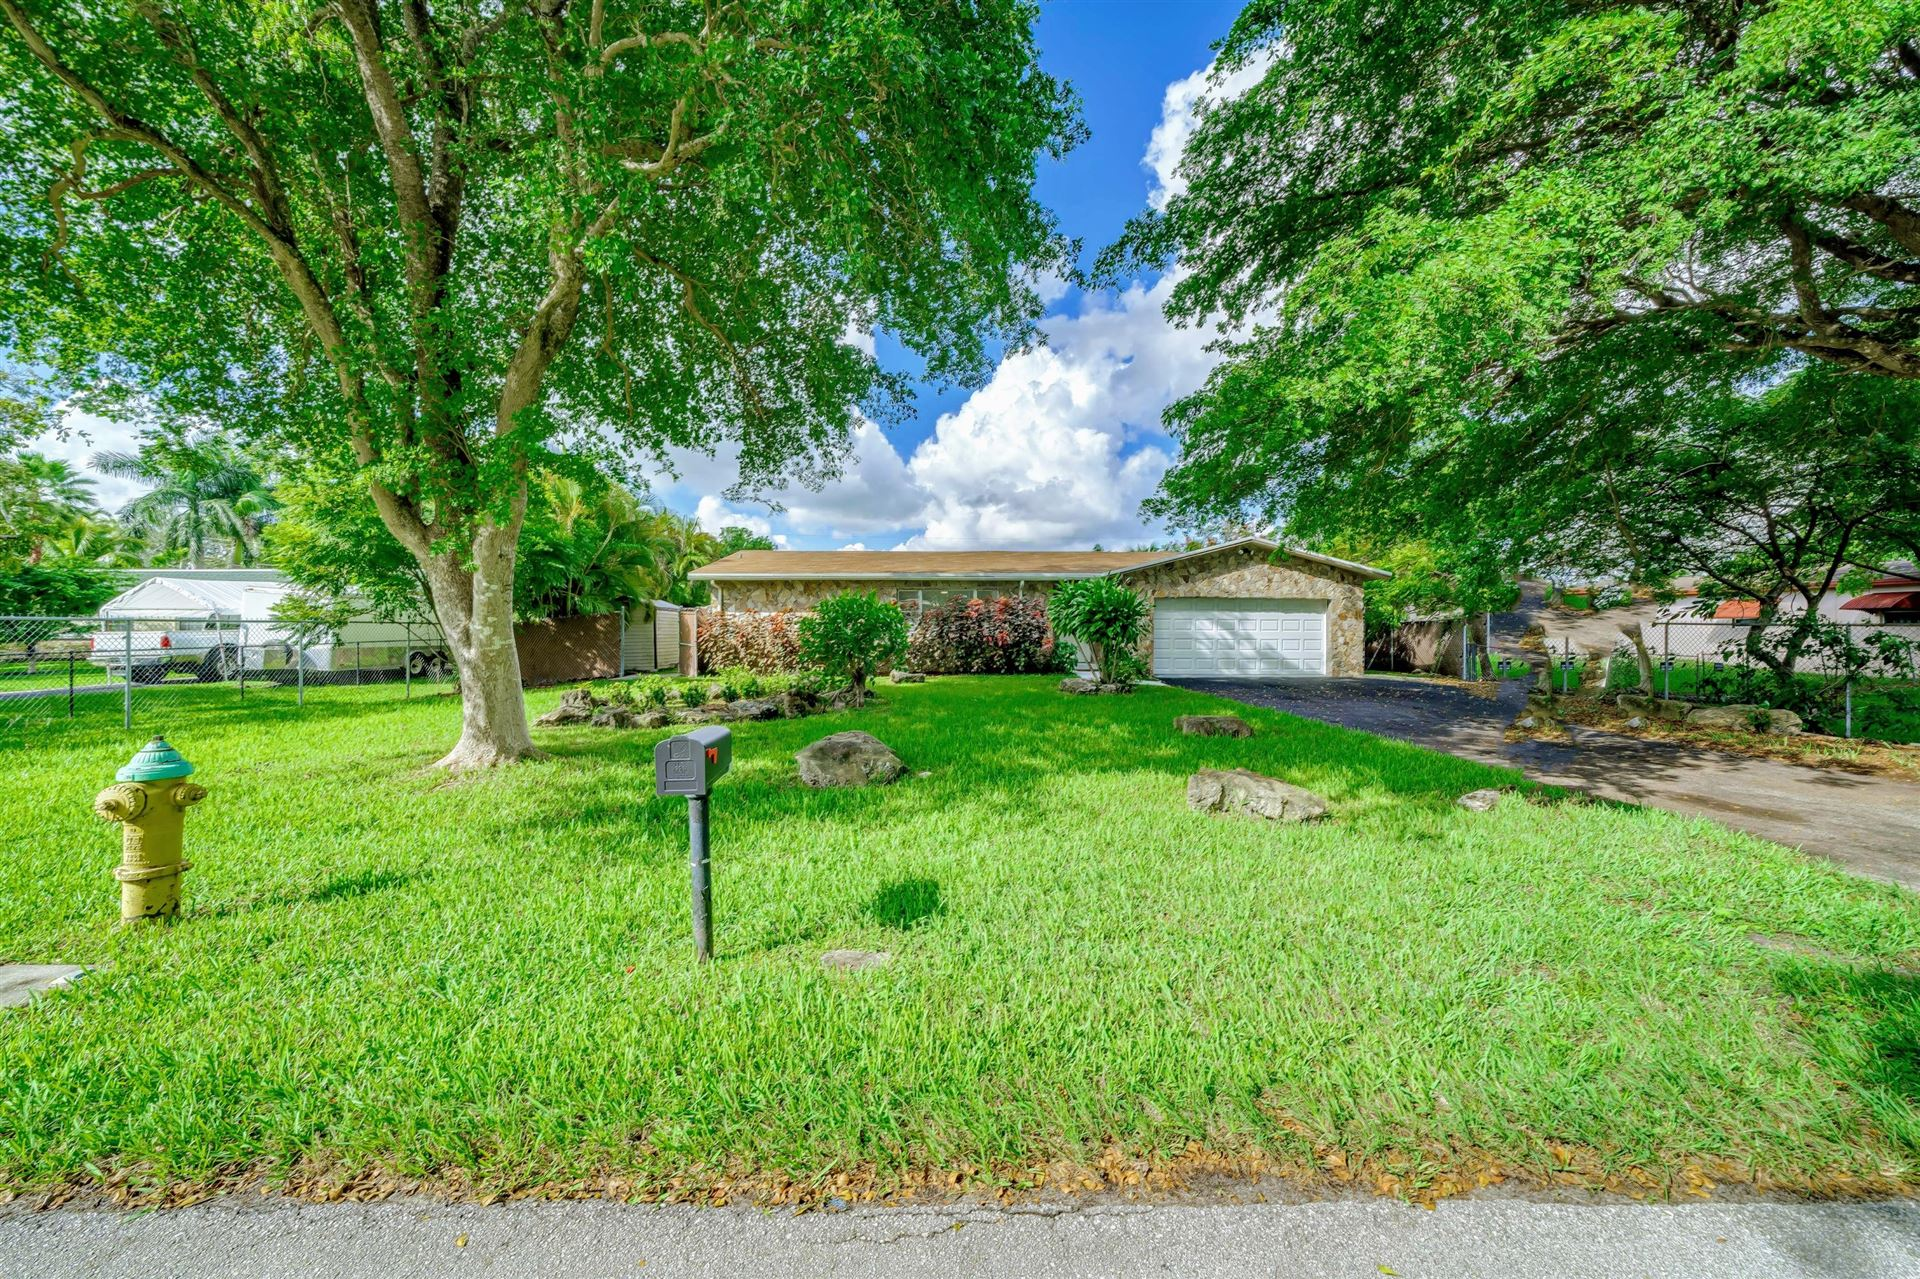 Photo of 4401 SW 74th Avenue, Davie, FL 33314 (MLS # RX-10582933)